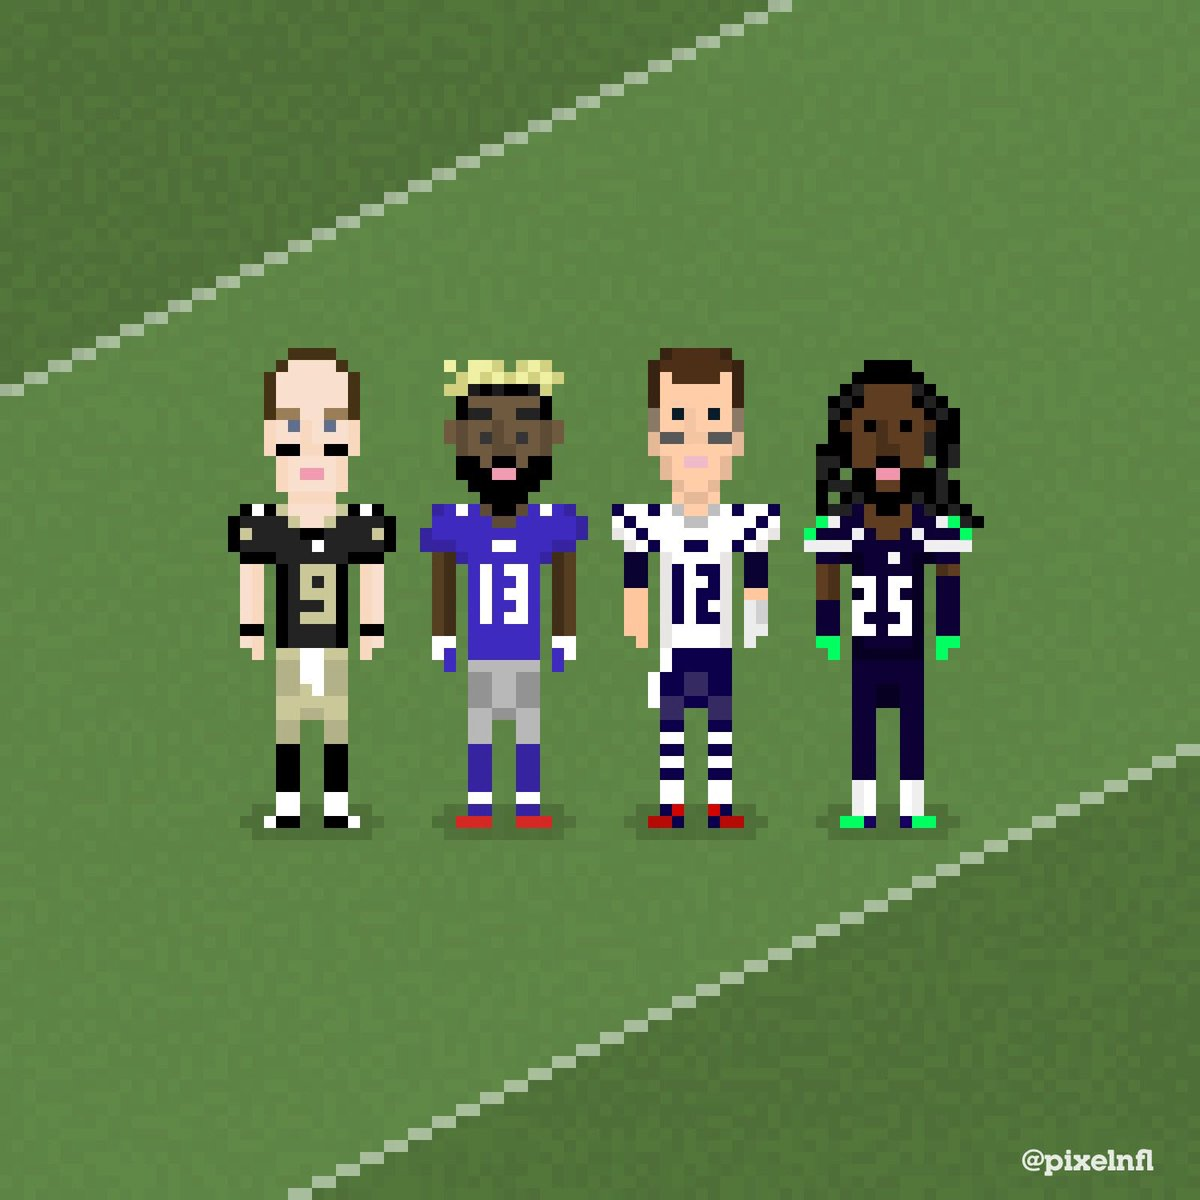 Uživatel Pixel Nfl Na Twitteru What Connects These Guys